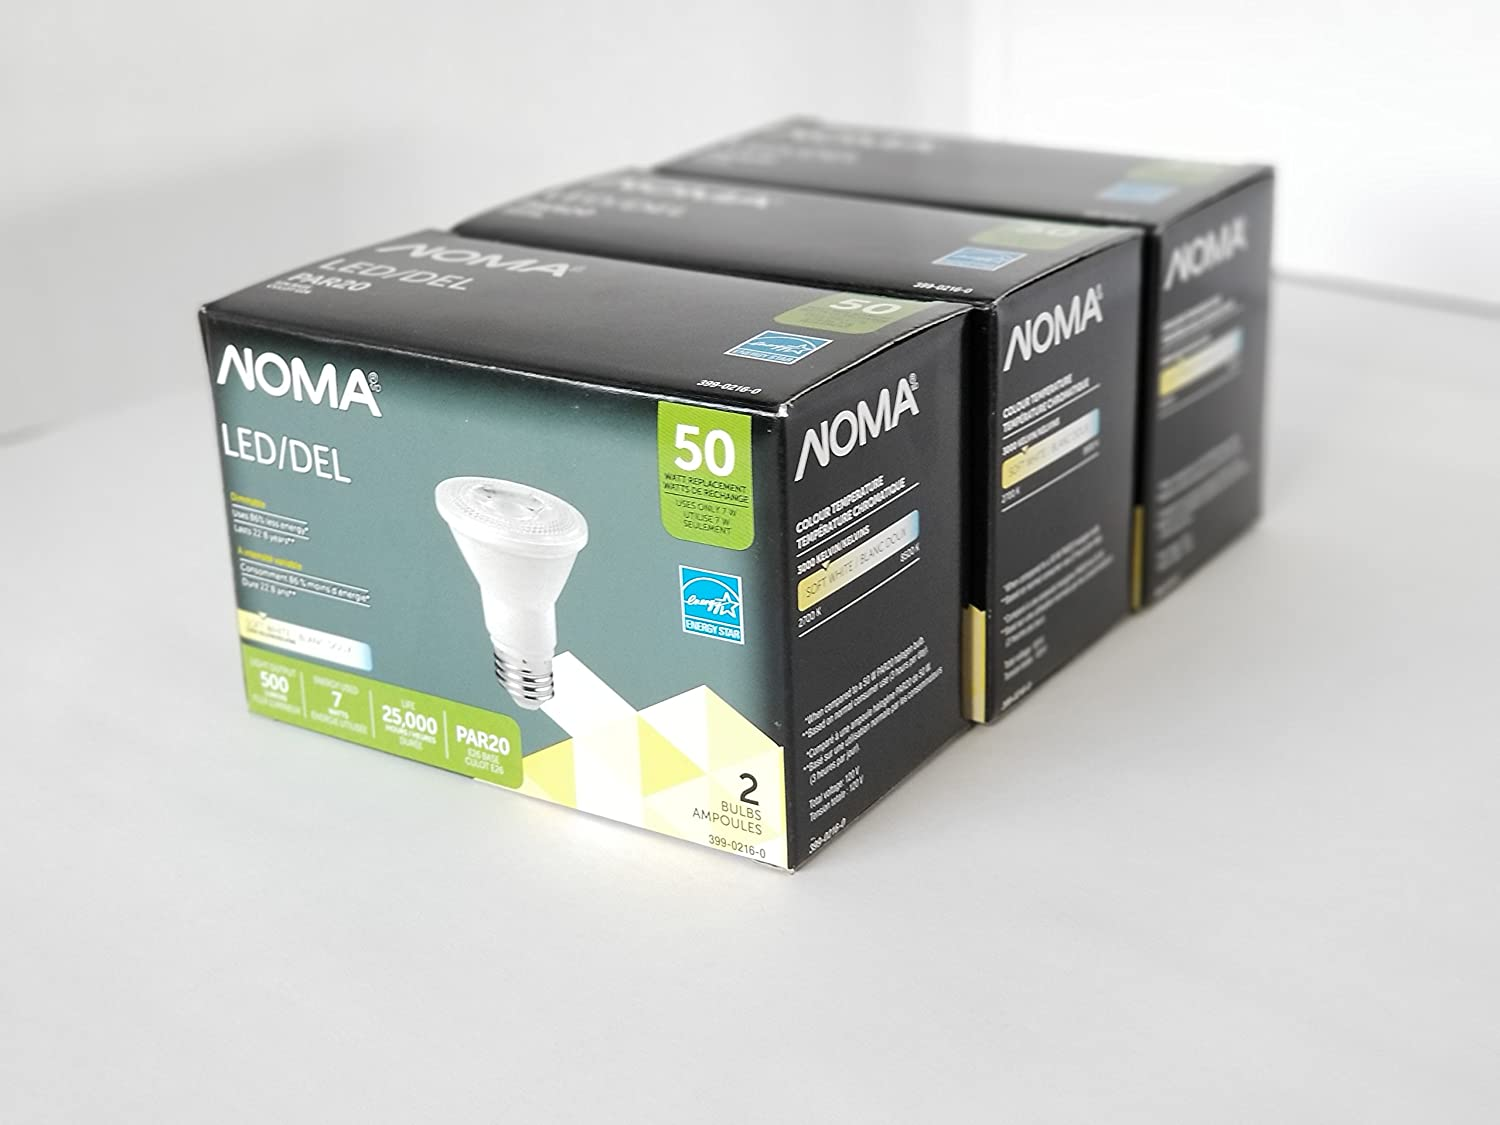 Noma PAR20 LED 50W Soft White Light Bulbs, 6-Pack, Dimmable and Ideal for Track and Recessed Lighting